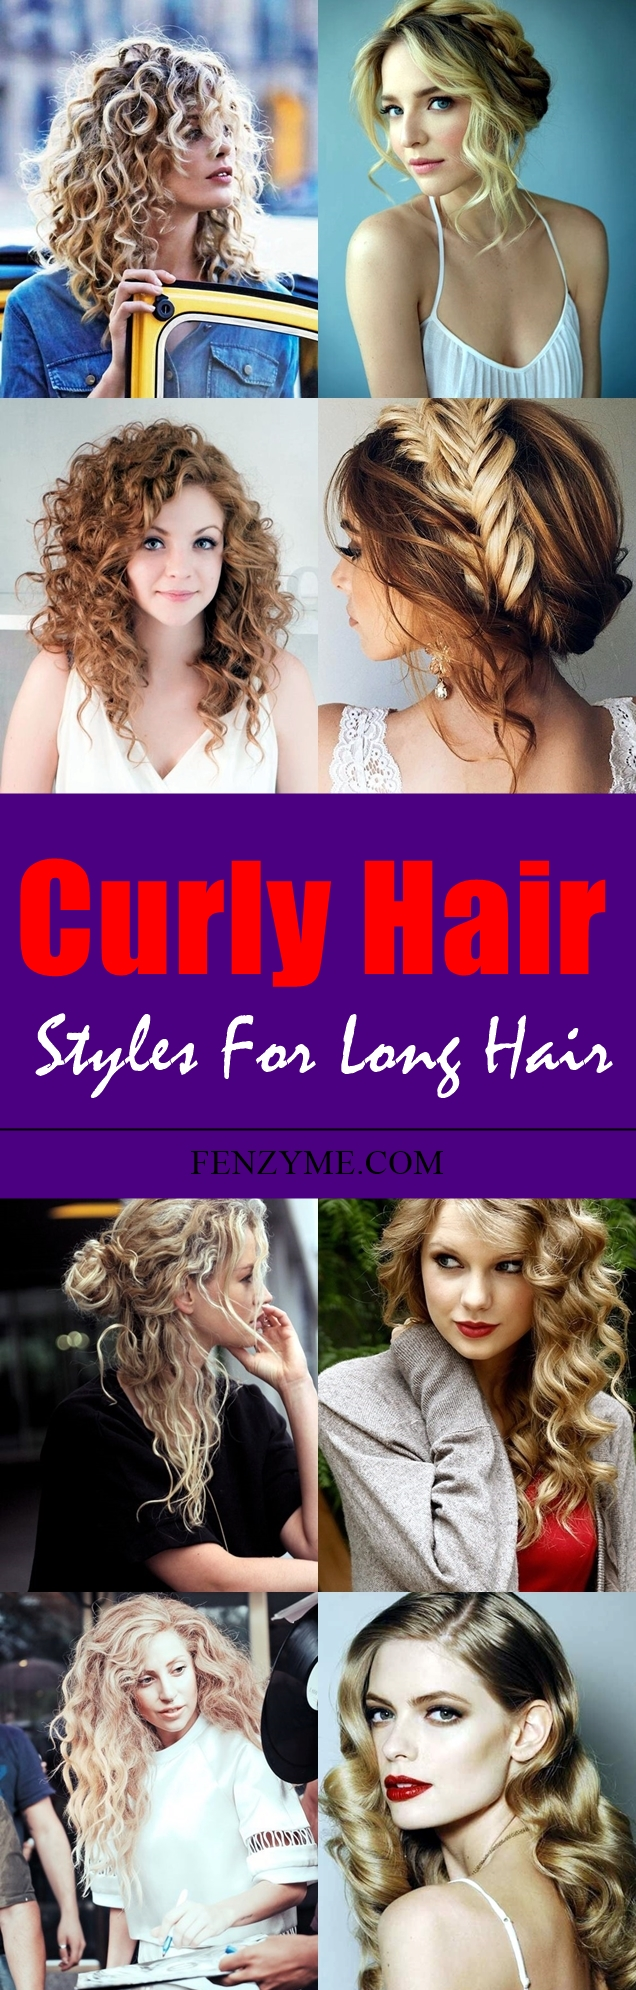 curly-hair-styles-for-long-hair-3-tile